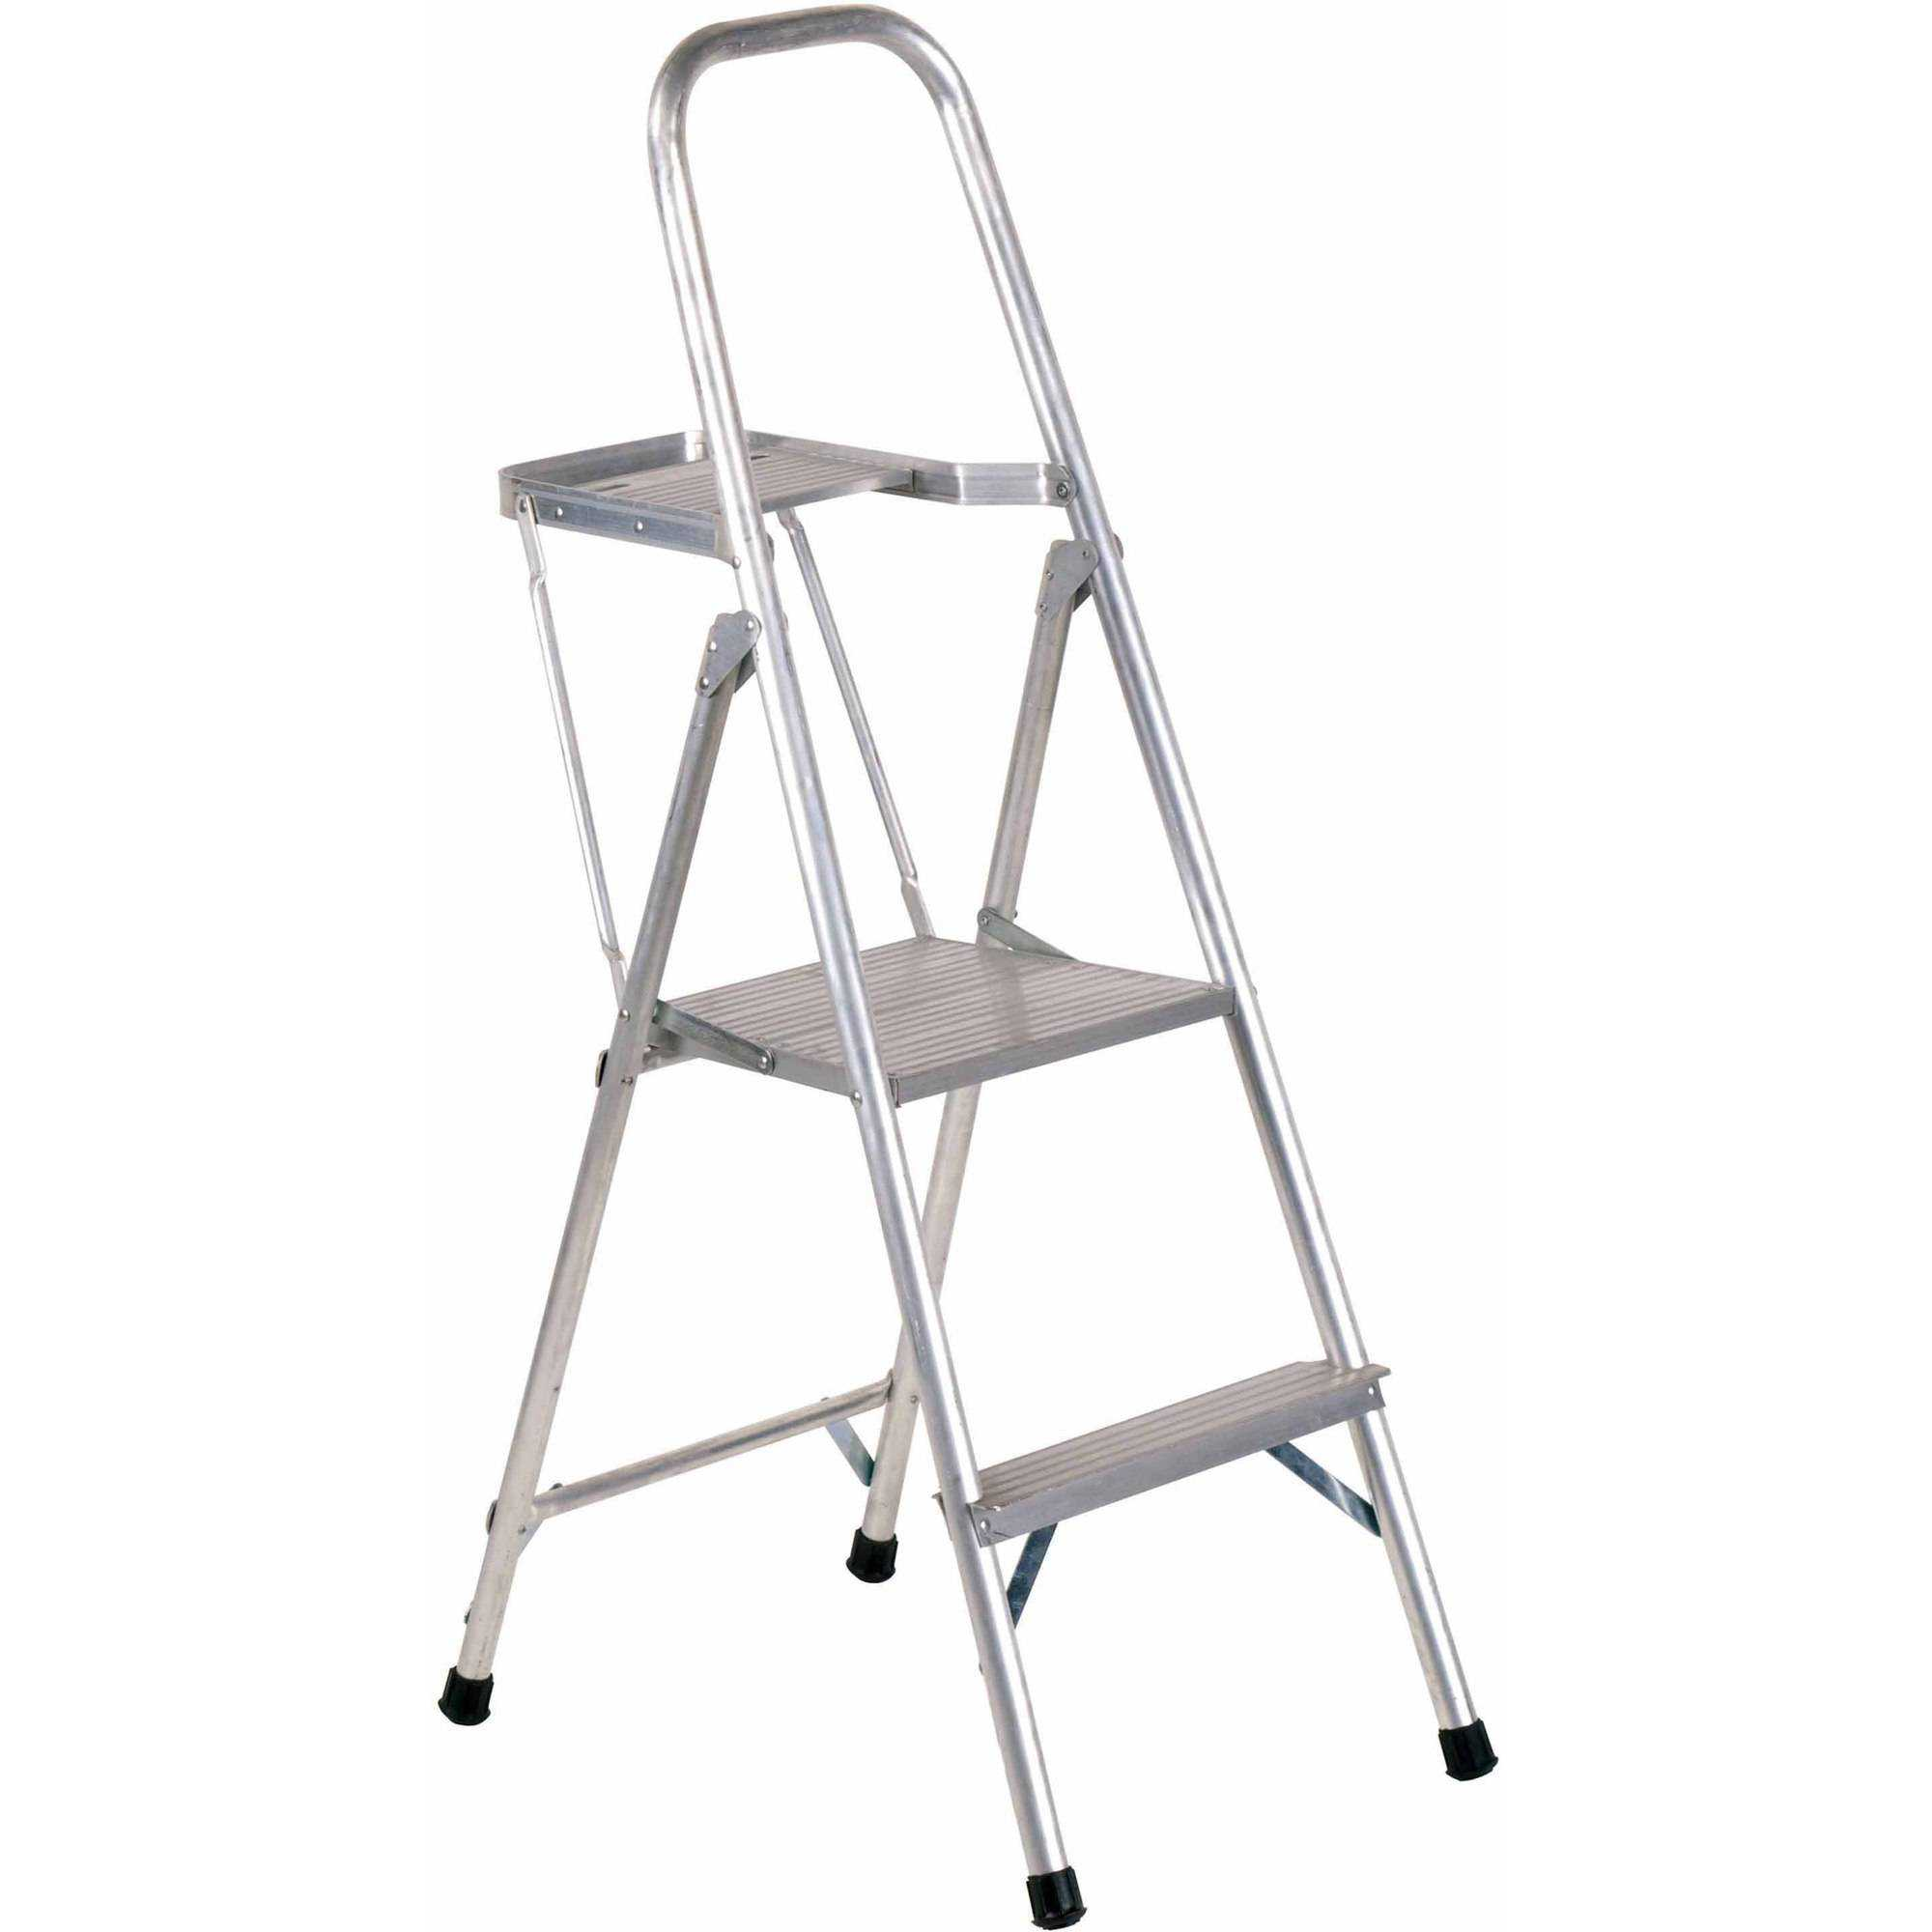 Louisville Ladder AP8004 4 ft. Aluminum Platform Step Stool, Type III, 200 lbs Load Capacity